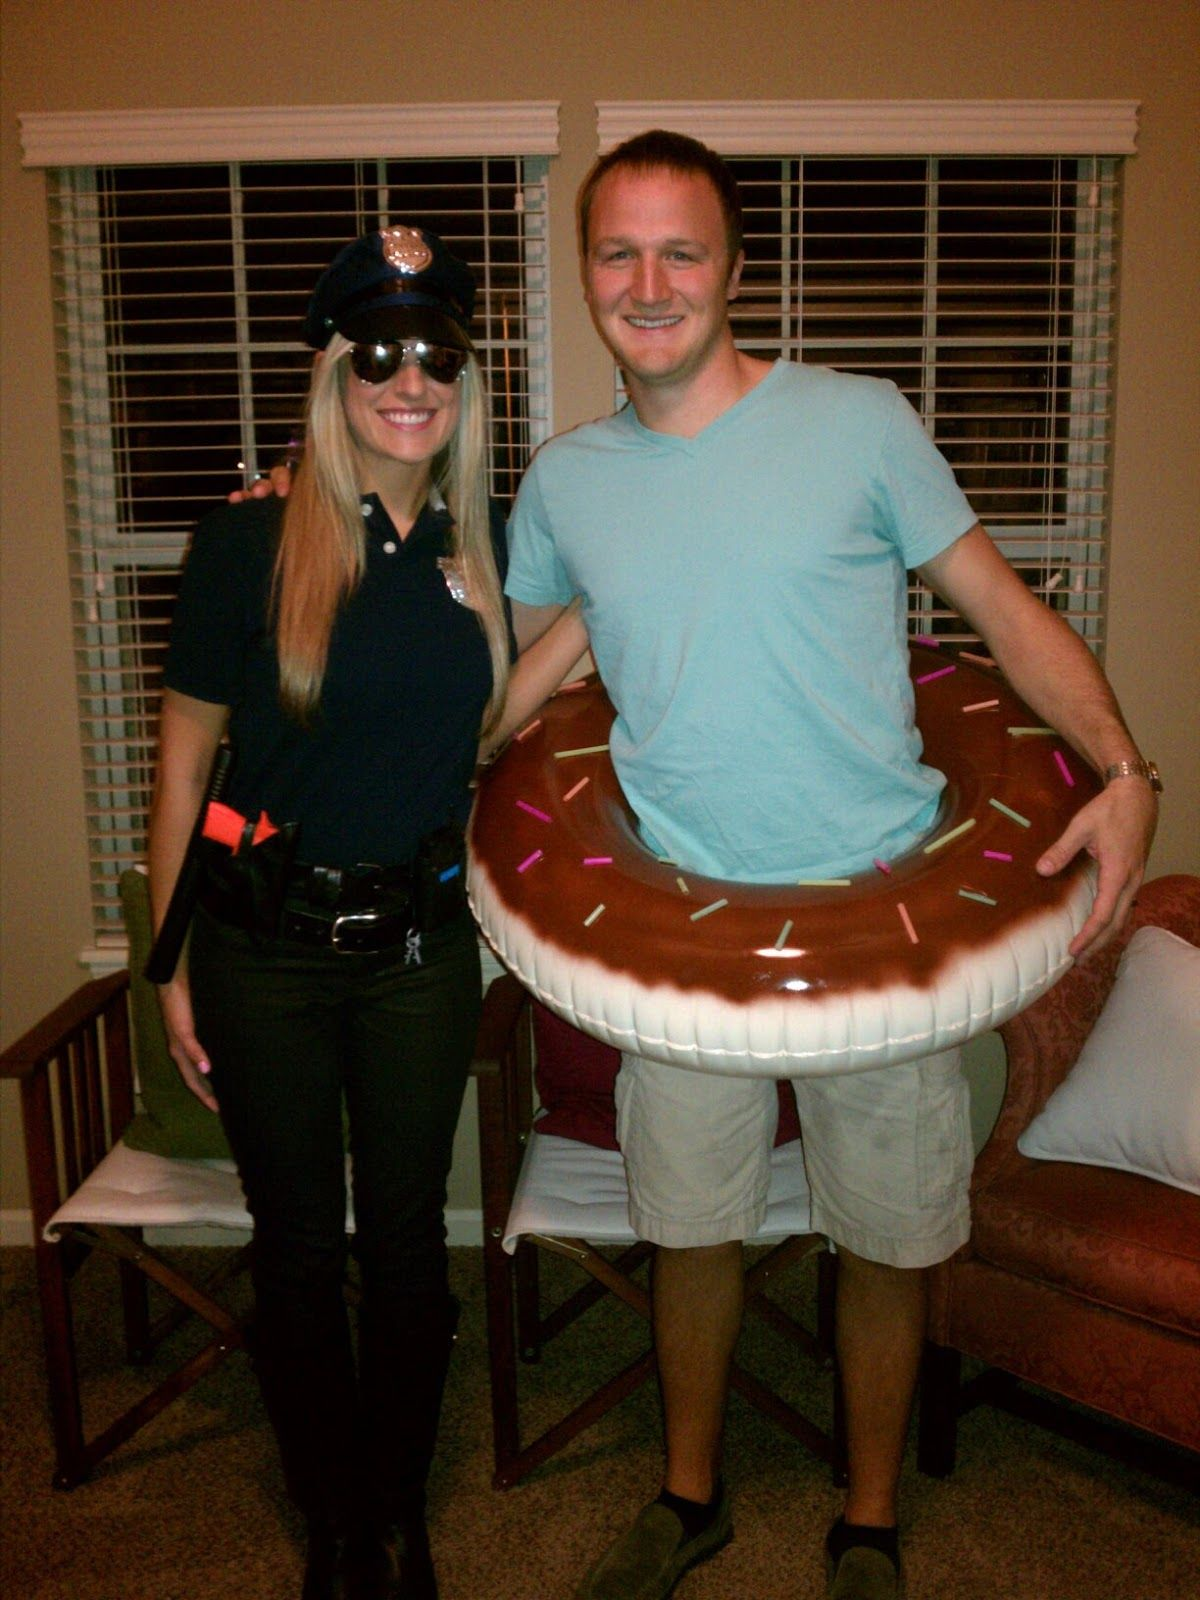 katie raines diy couples halloween costume ideas him the cop and her the doughnut - Halloween Costumes Idea For Couples